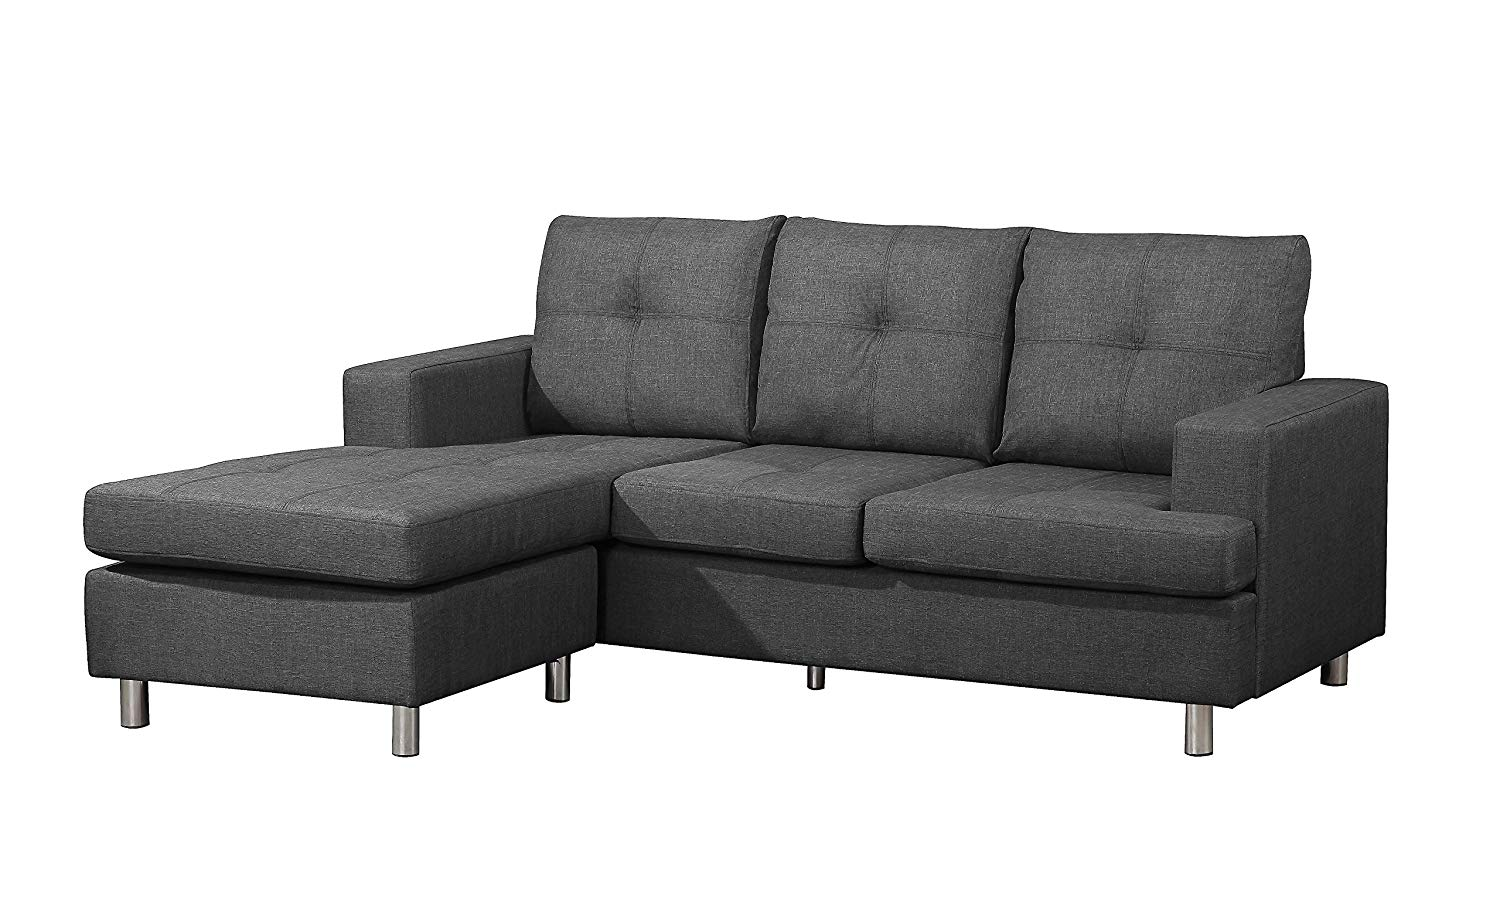 """Container Furniture Direct S0101 Fancy Linen Upholstered Contemporary Reversible Sectional Sofa, 76.5"""", Dark Grey"""